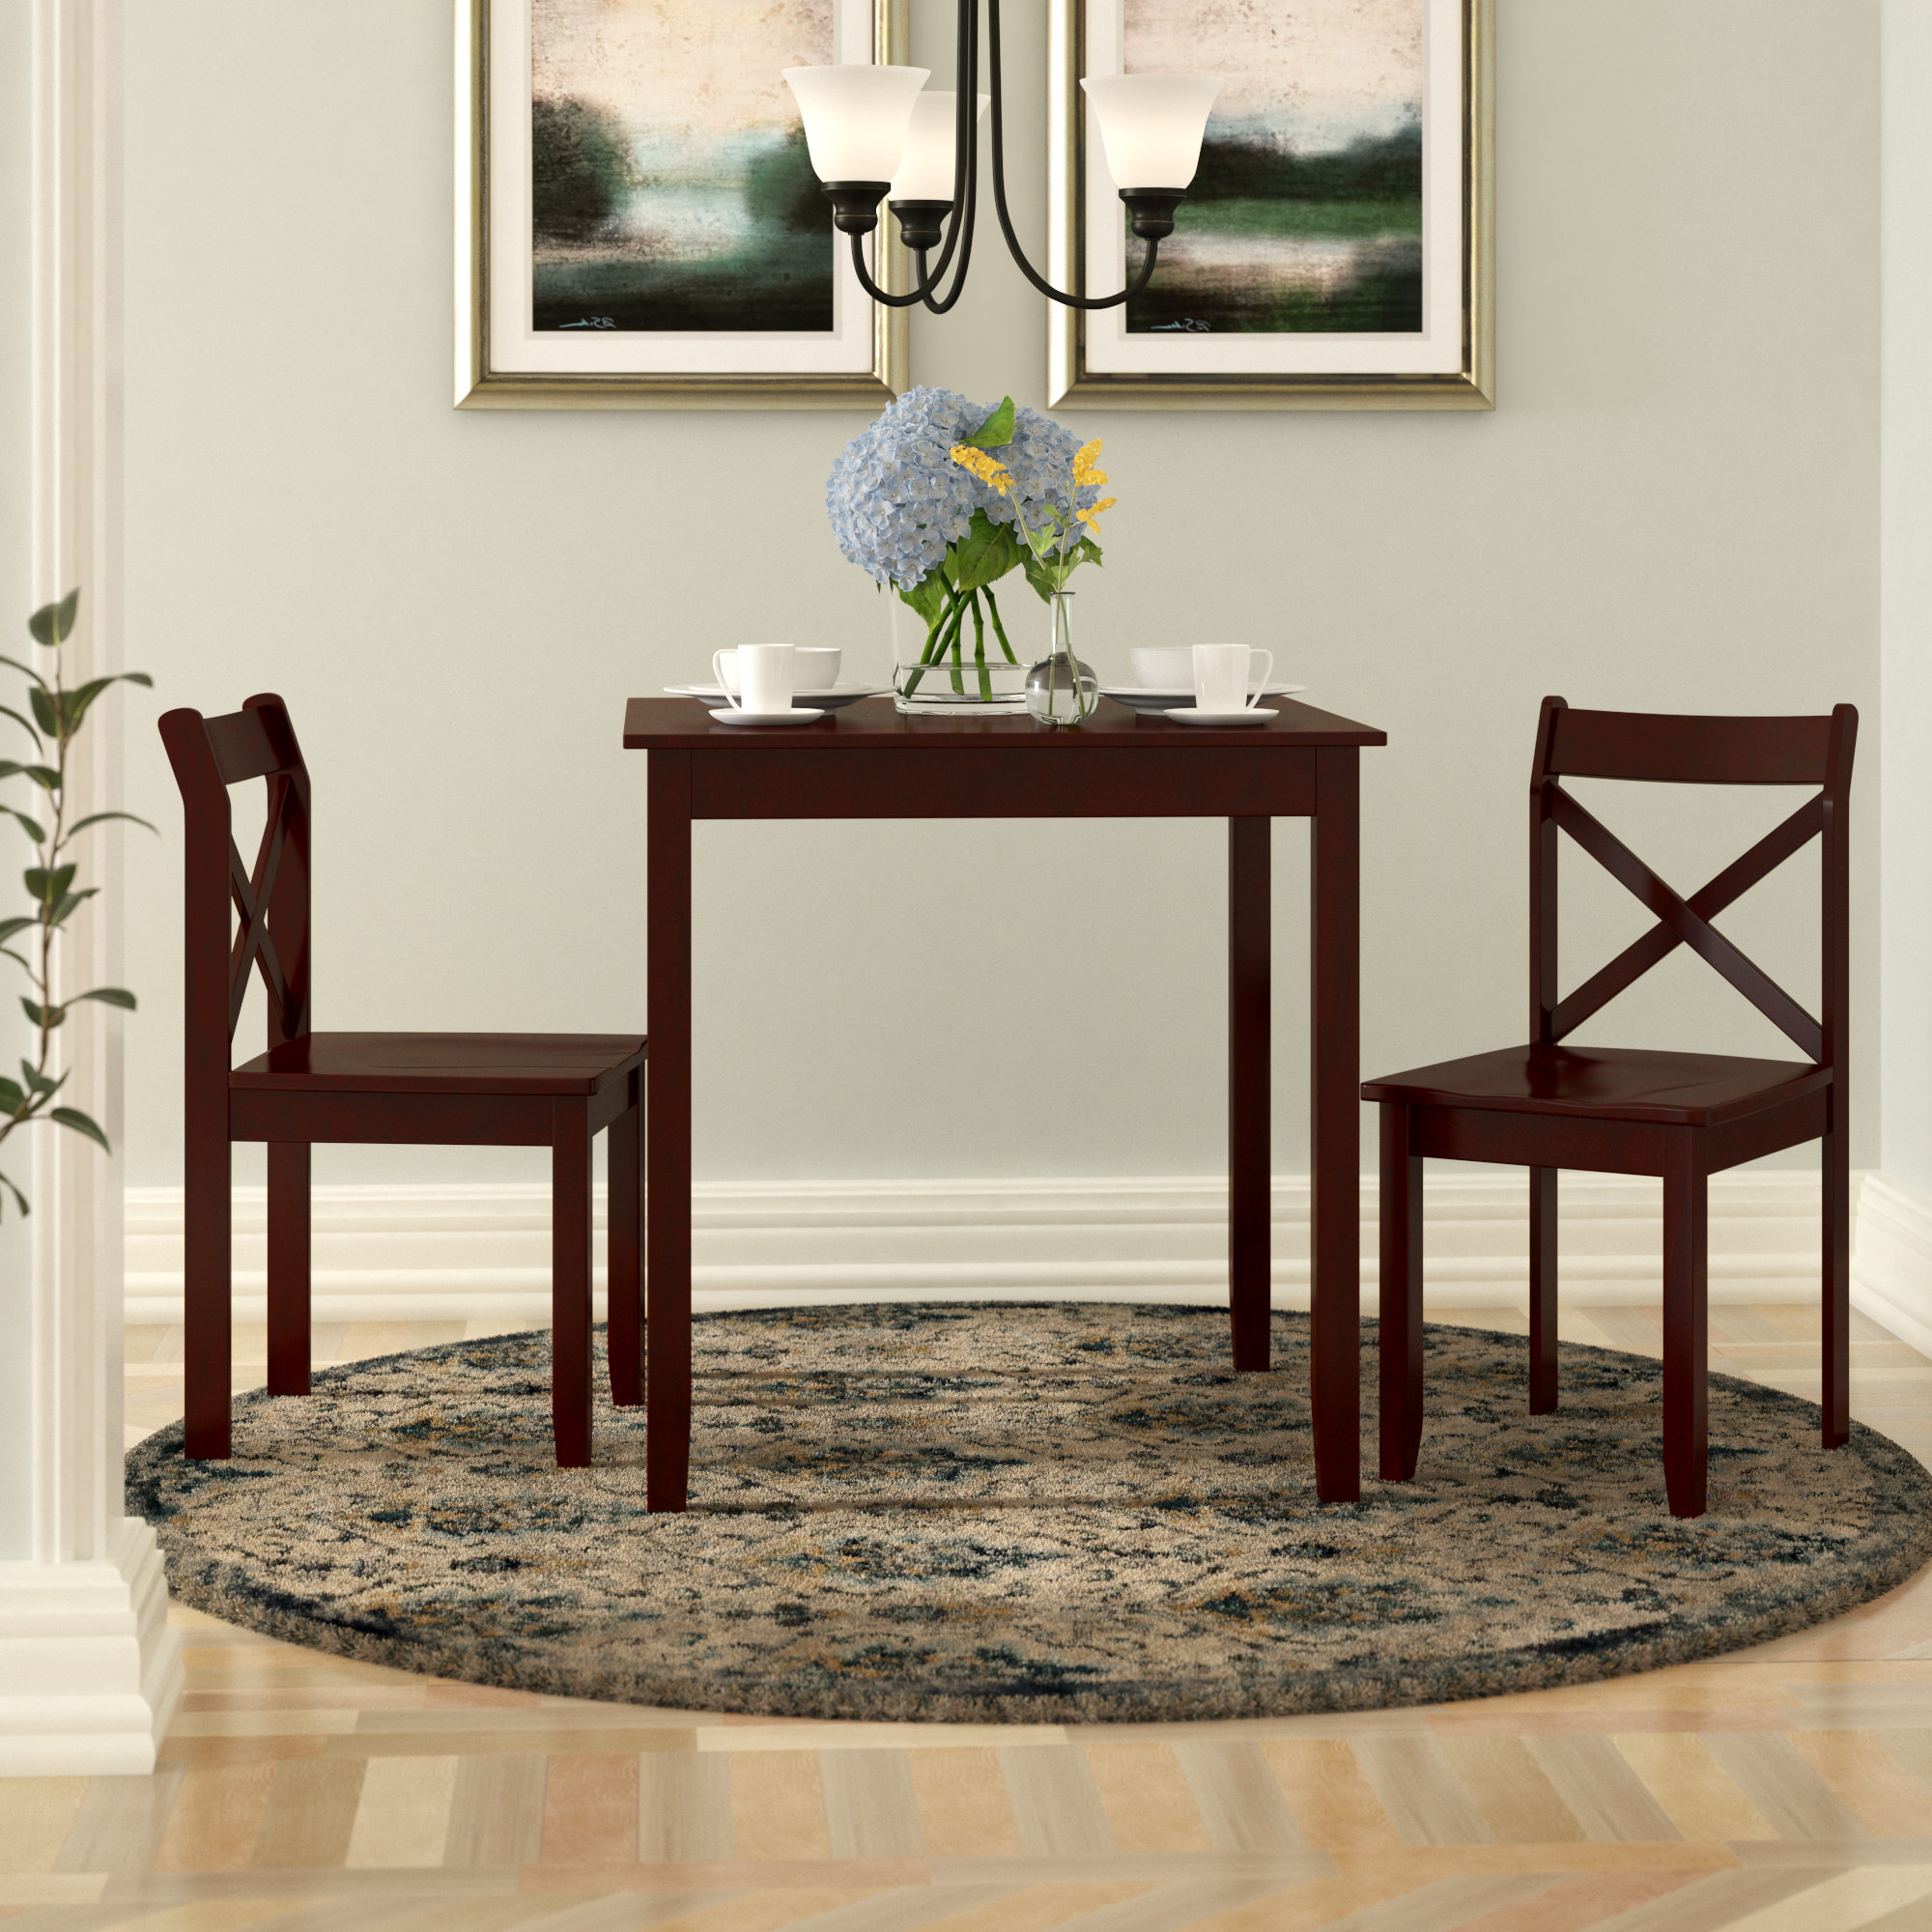 Widely Used Shepparton Vintage 3 Piece Dining Sets Regarding 3 Piece Kitchen & Dining Room Sets You'll Love In (View 8 of 20)